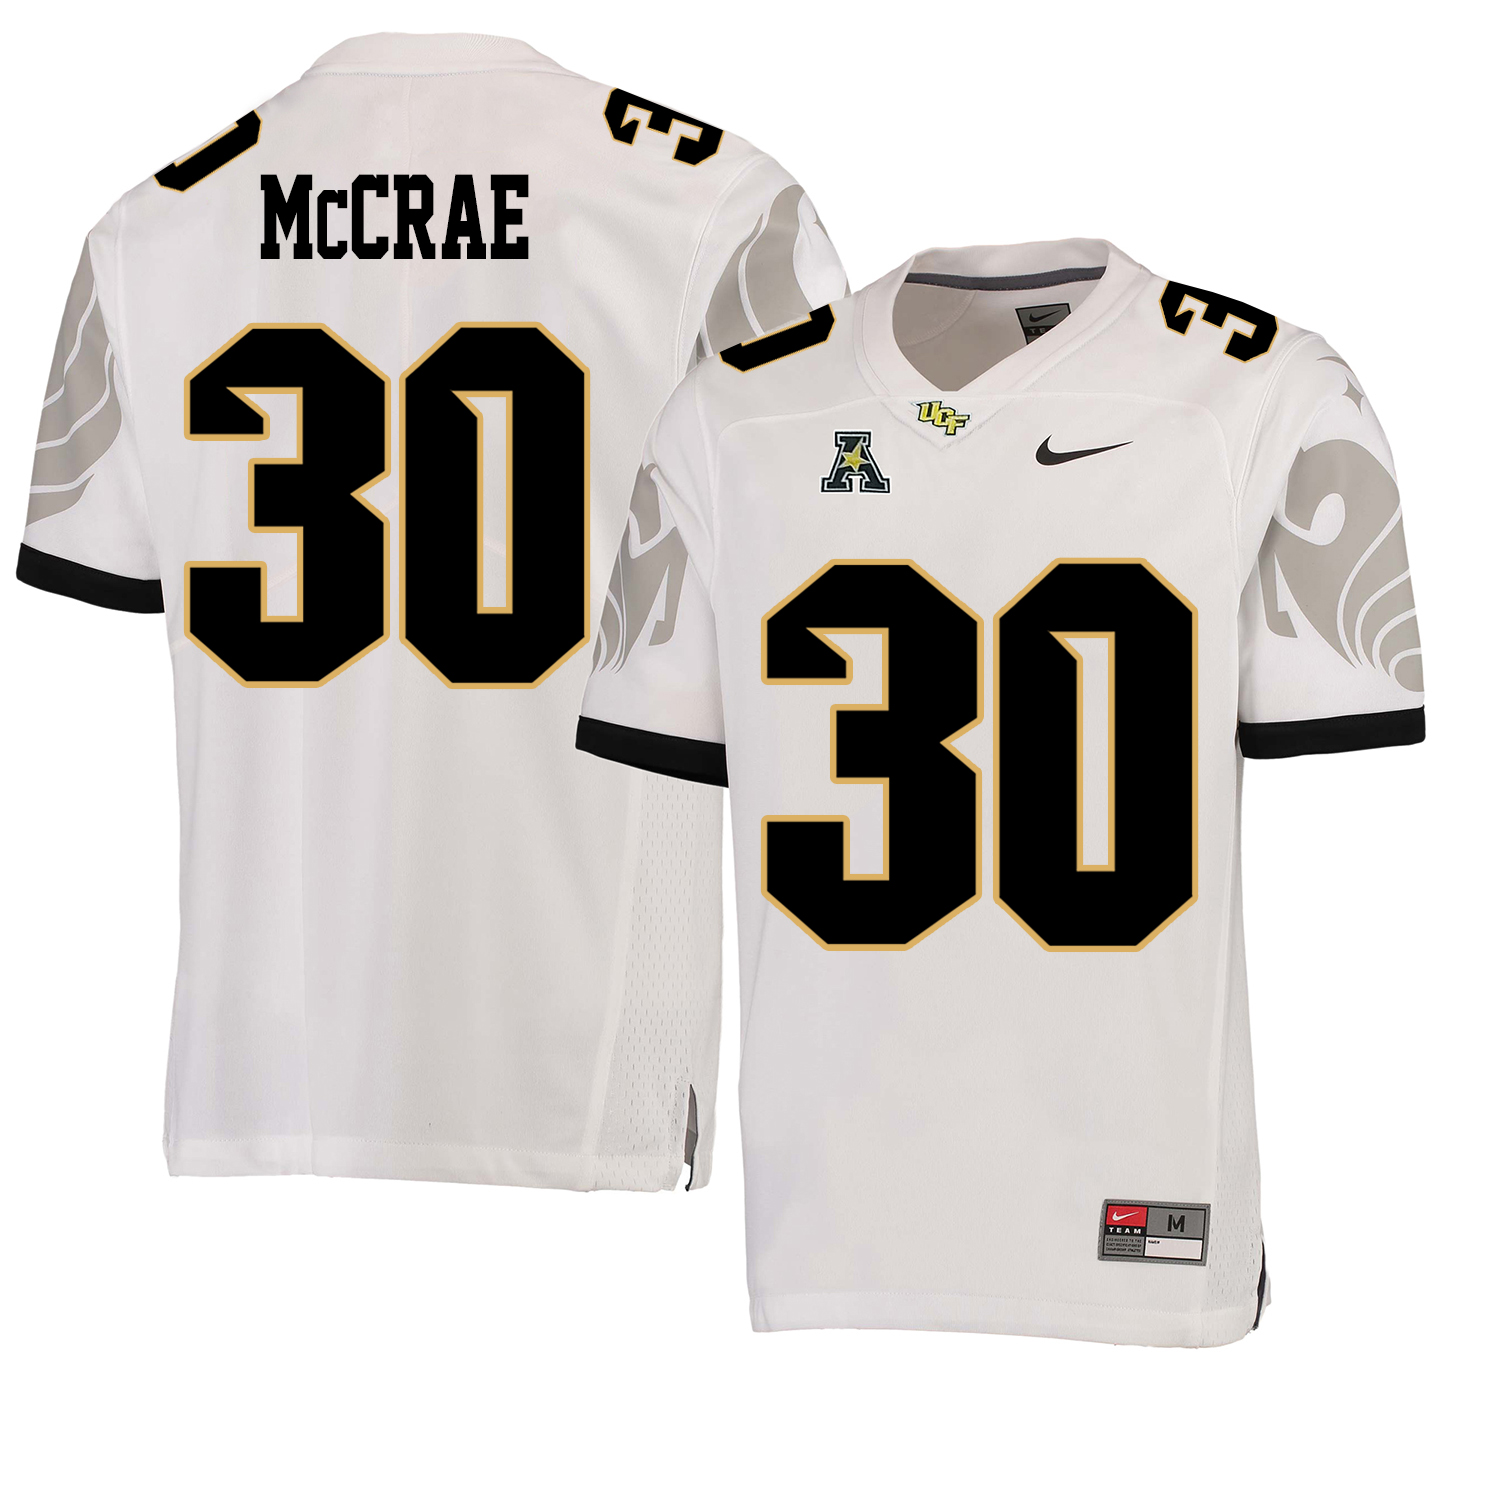 UCF Knights 30 Greg McCrae White College Football Jersey